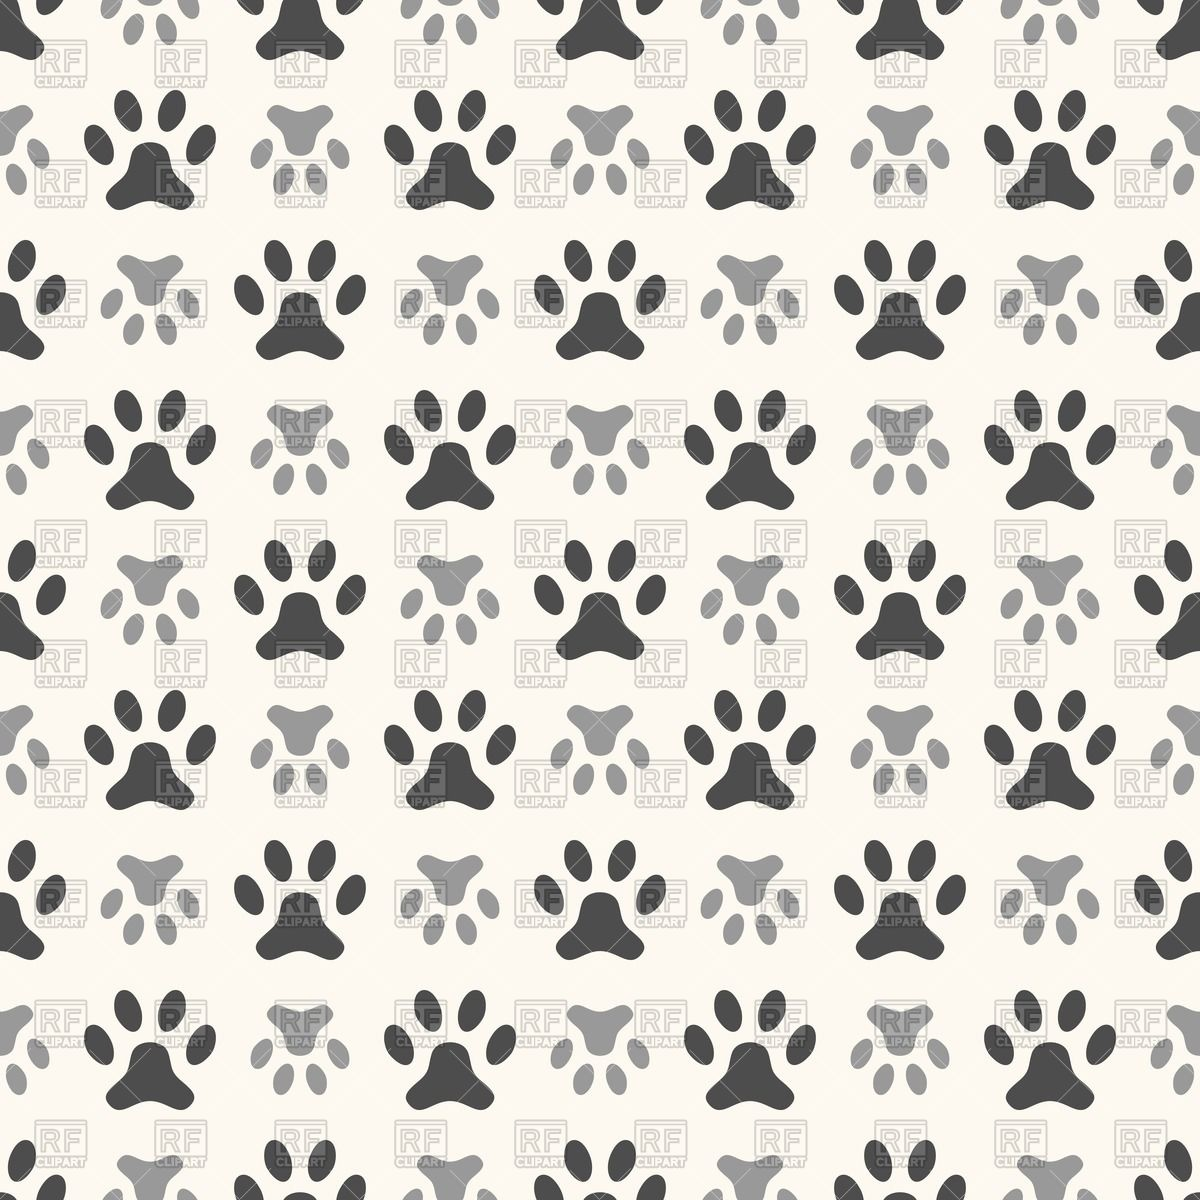 Dog paw print multiple clipart.